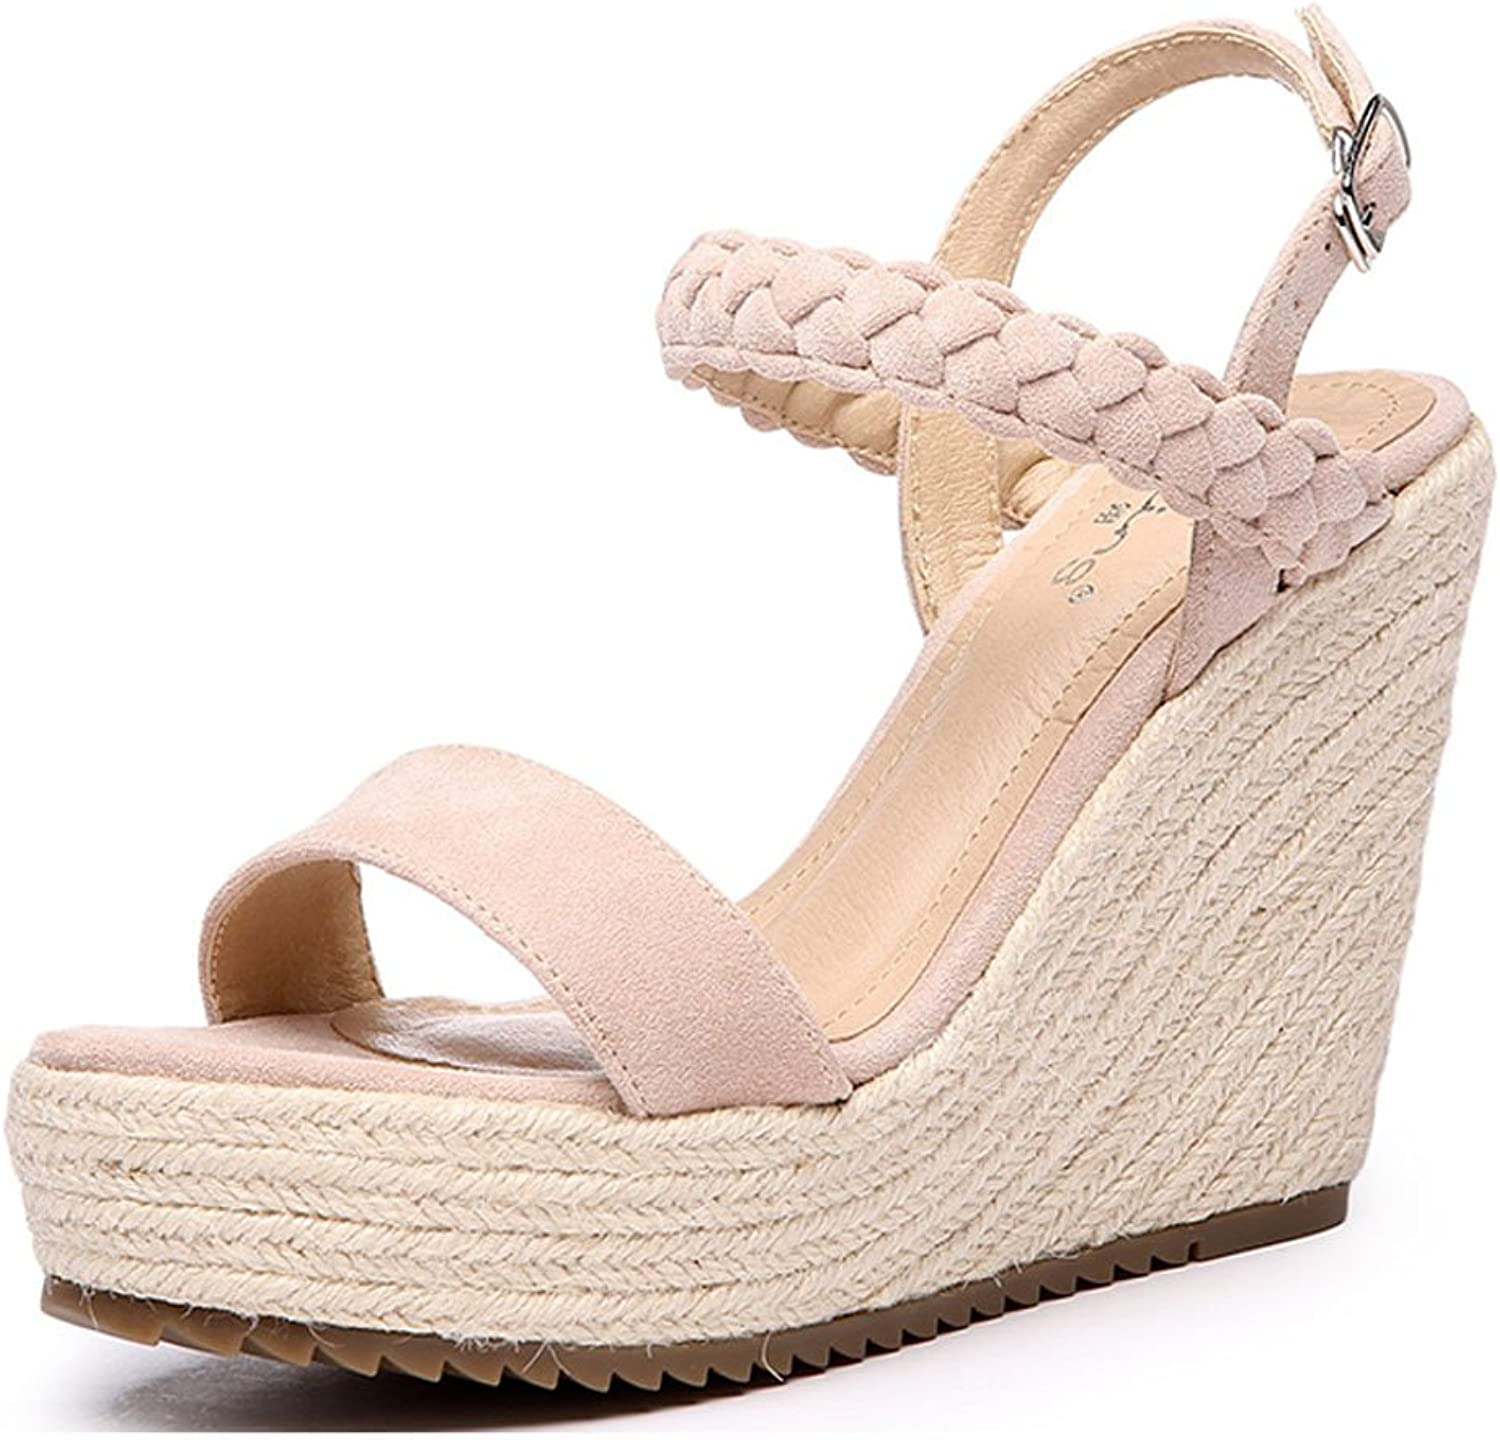 Summer Women Wedge Sandals Elegant Braided Hemp Rope Platform High Heels Casual and Comfortable Women's shoes (color   Nude color, Size   35)